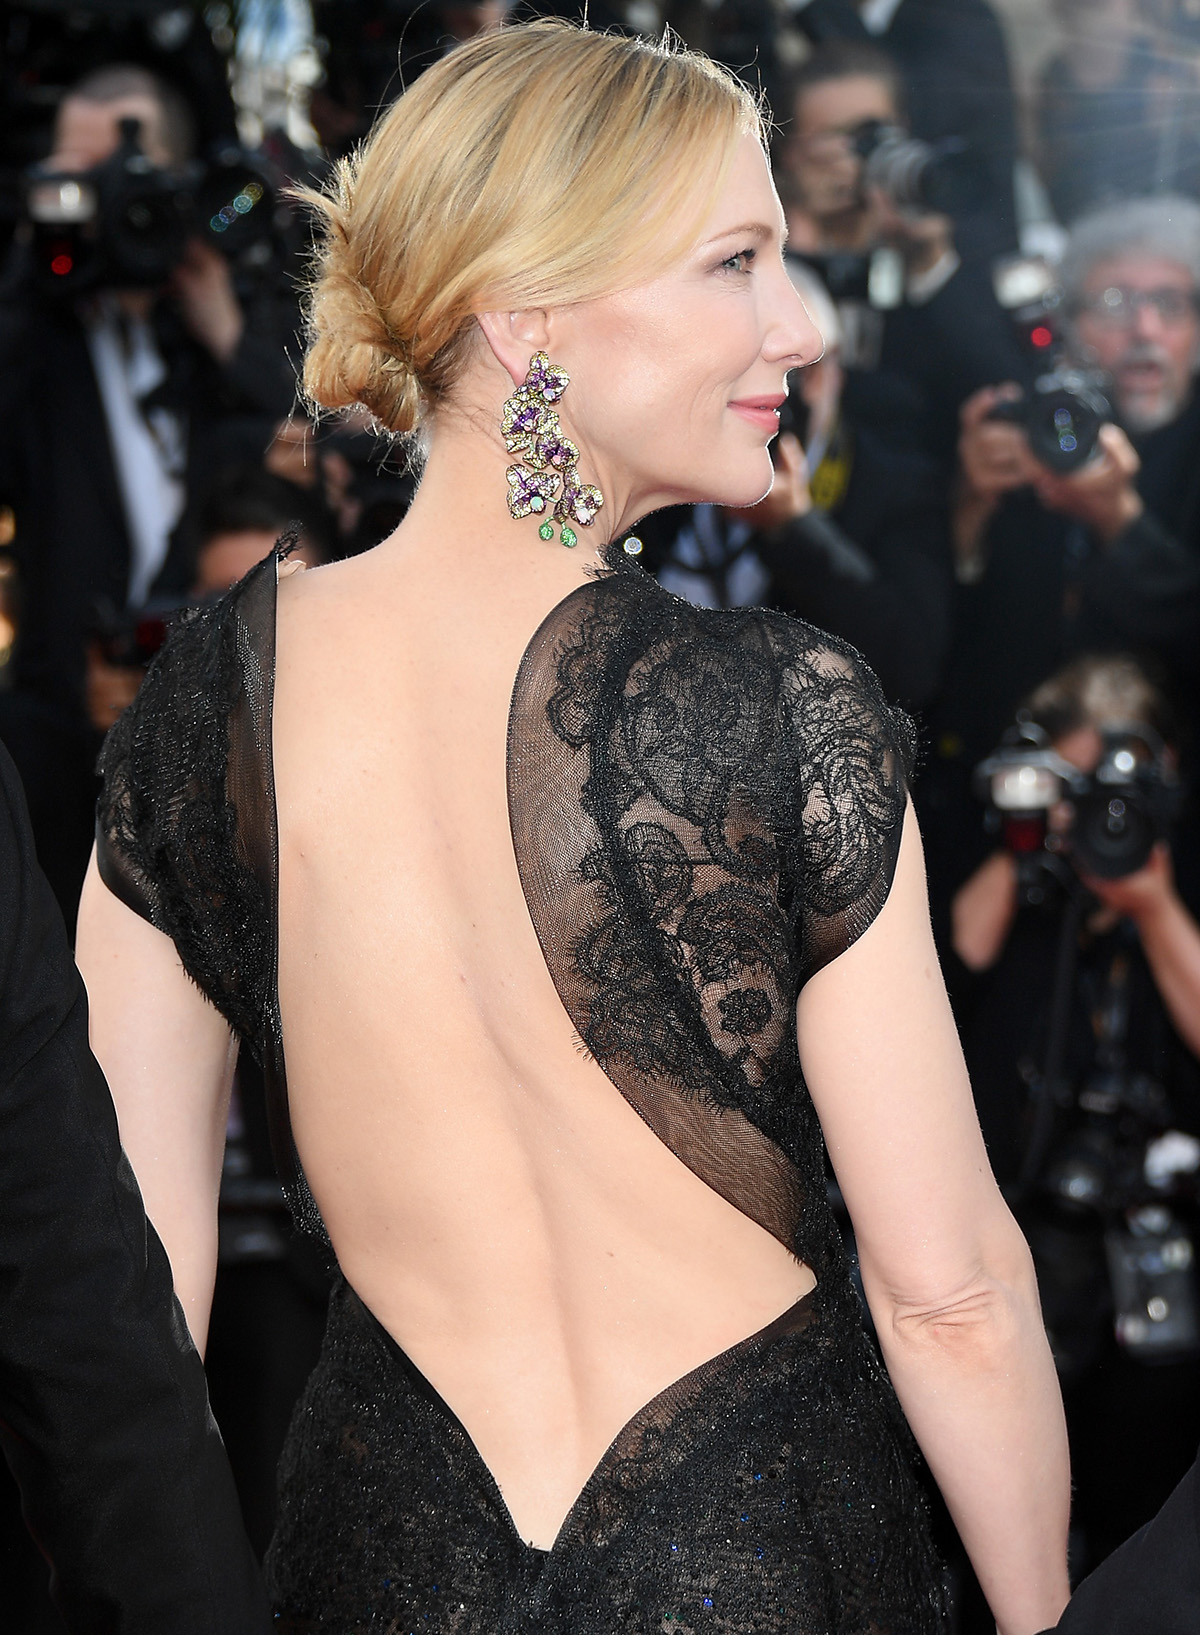 """CANNES, FRANCE - MAY 08: Jury president Cate Blanchett attends the screening of """"Everybody Knows (Todos Lo Saben)"""" and the opening gala during the 71st annual Cannes Film Festival at Palais des Festivals on May 8, 2018 in Cannes, France. (Photo by Venturelli/WireImage)"""